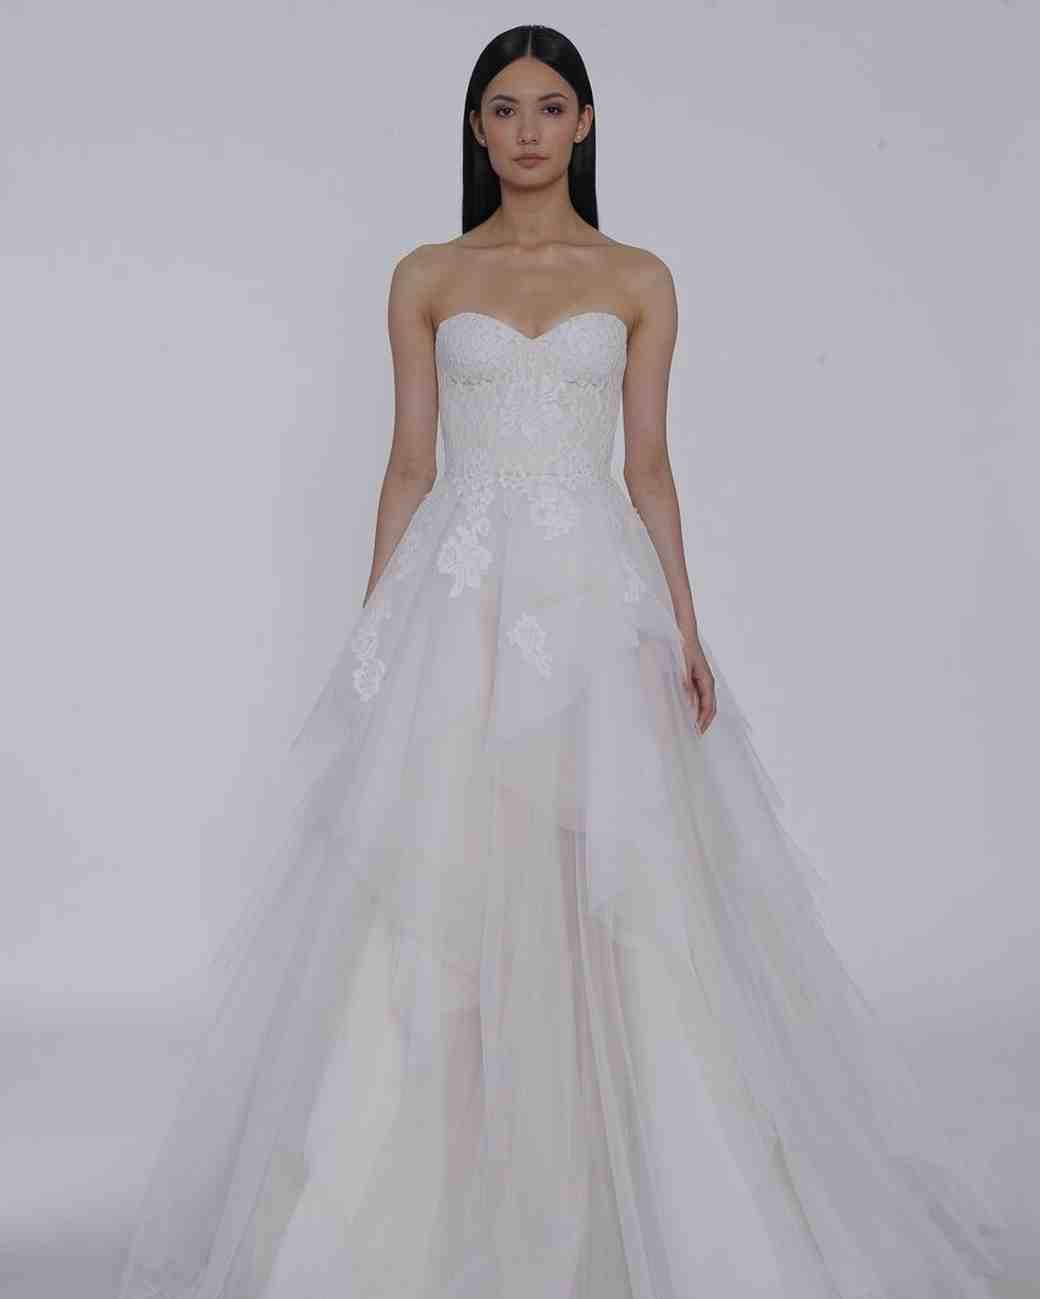 Sophia Tolli Bridal Spring 2019: Allison Webb Spring 2019 Wedding Dress Collection